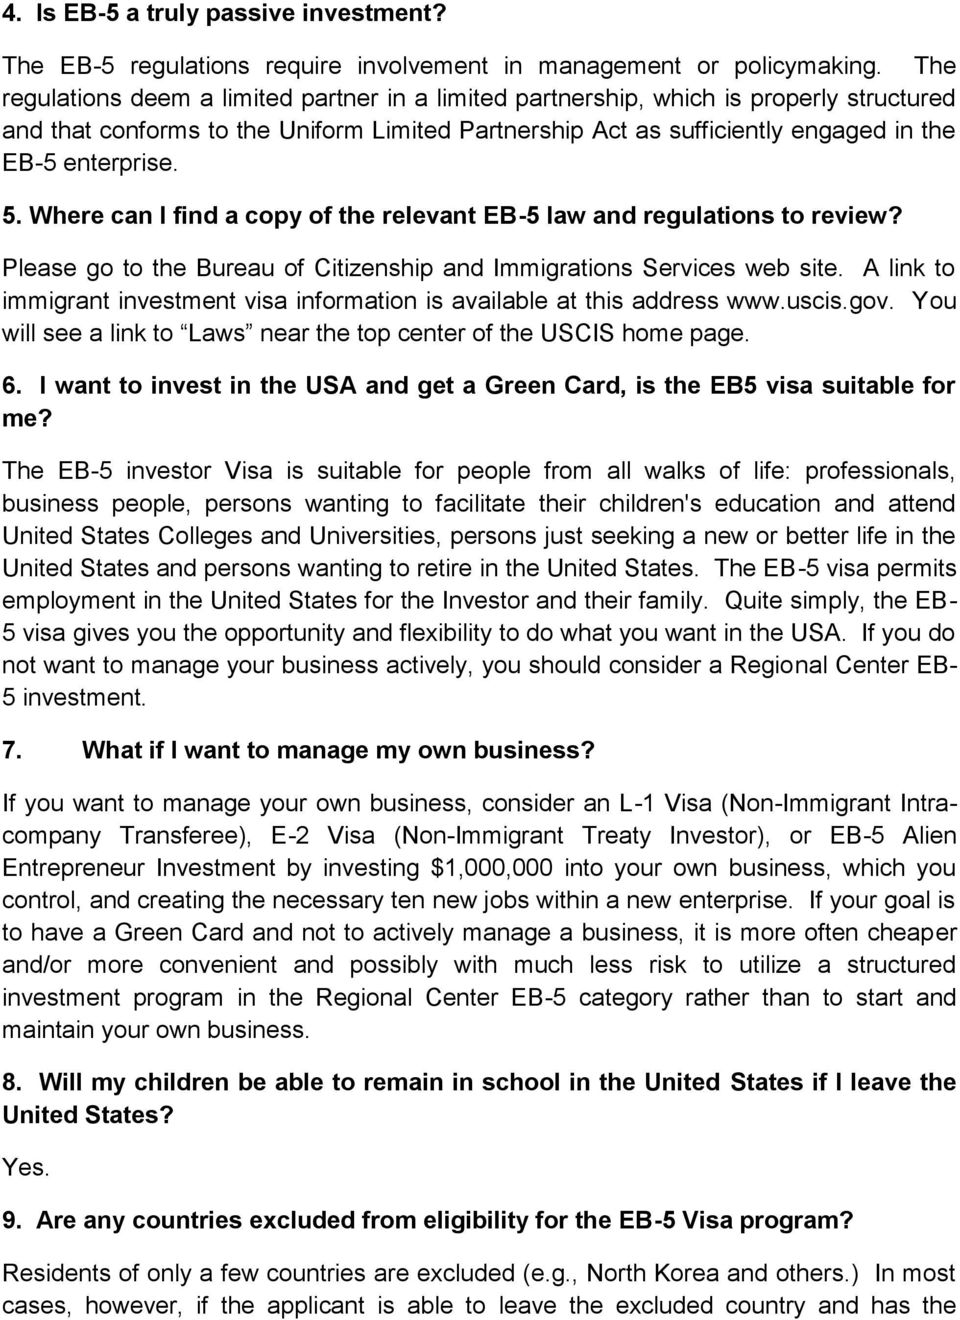 5. Where can I find a copy of the relevant EB-5 law and regulations to review? Please go to the Bureau of Citizenship and Immigrations Services web site.